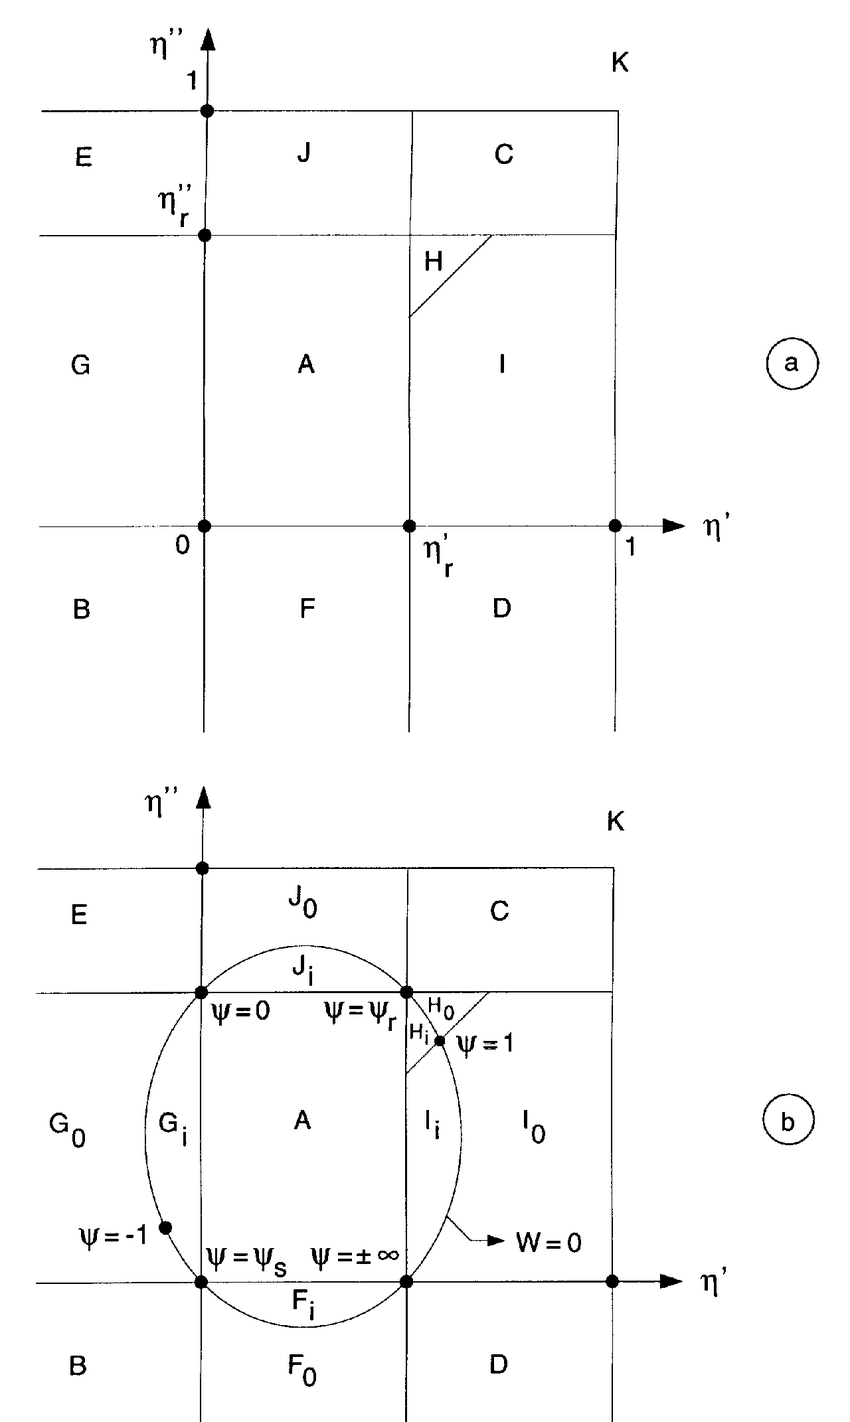 hight resolution of division of the 0 00 plane for two coupled endoreversible engines a basic